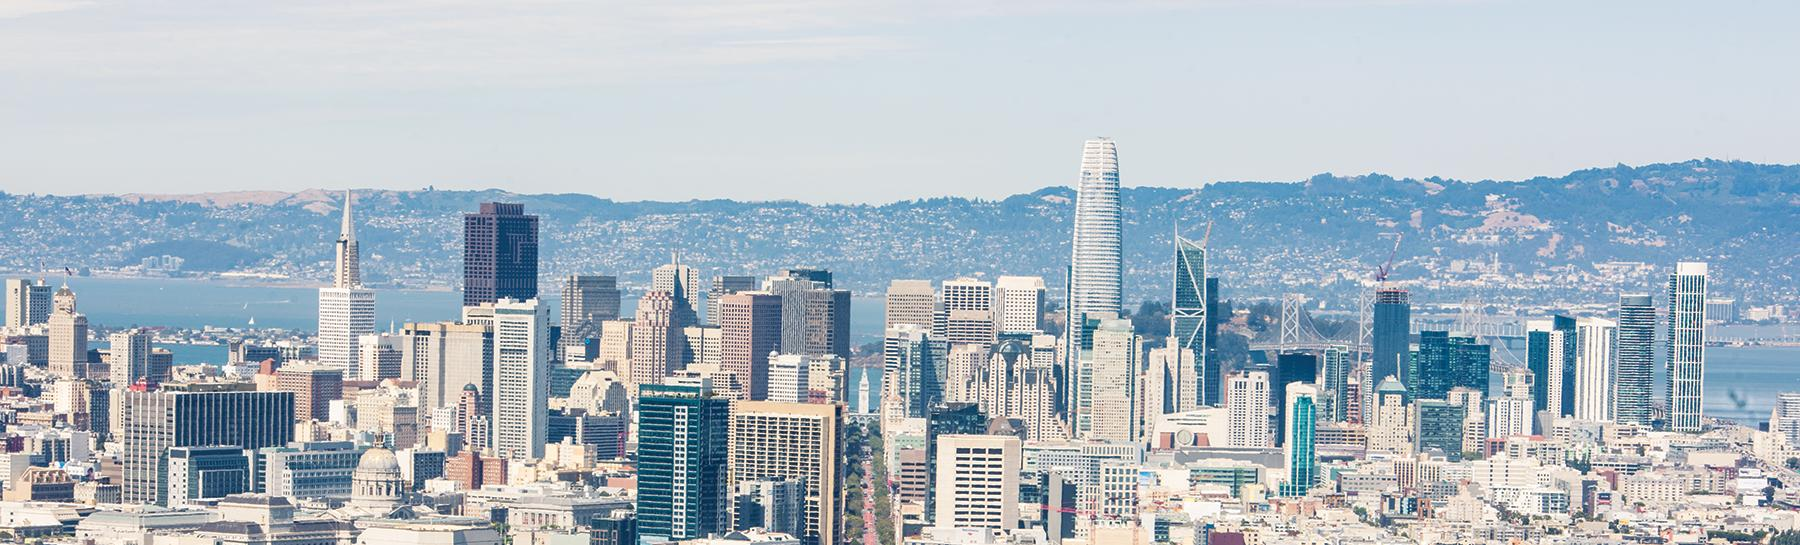 Image of a wide panoramic image of the City of San Francisco as seen from Twin Peaks towards downtown.